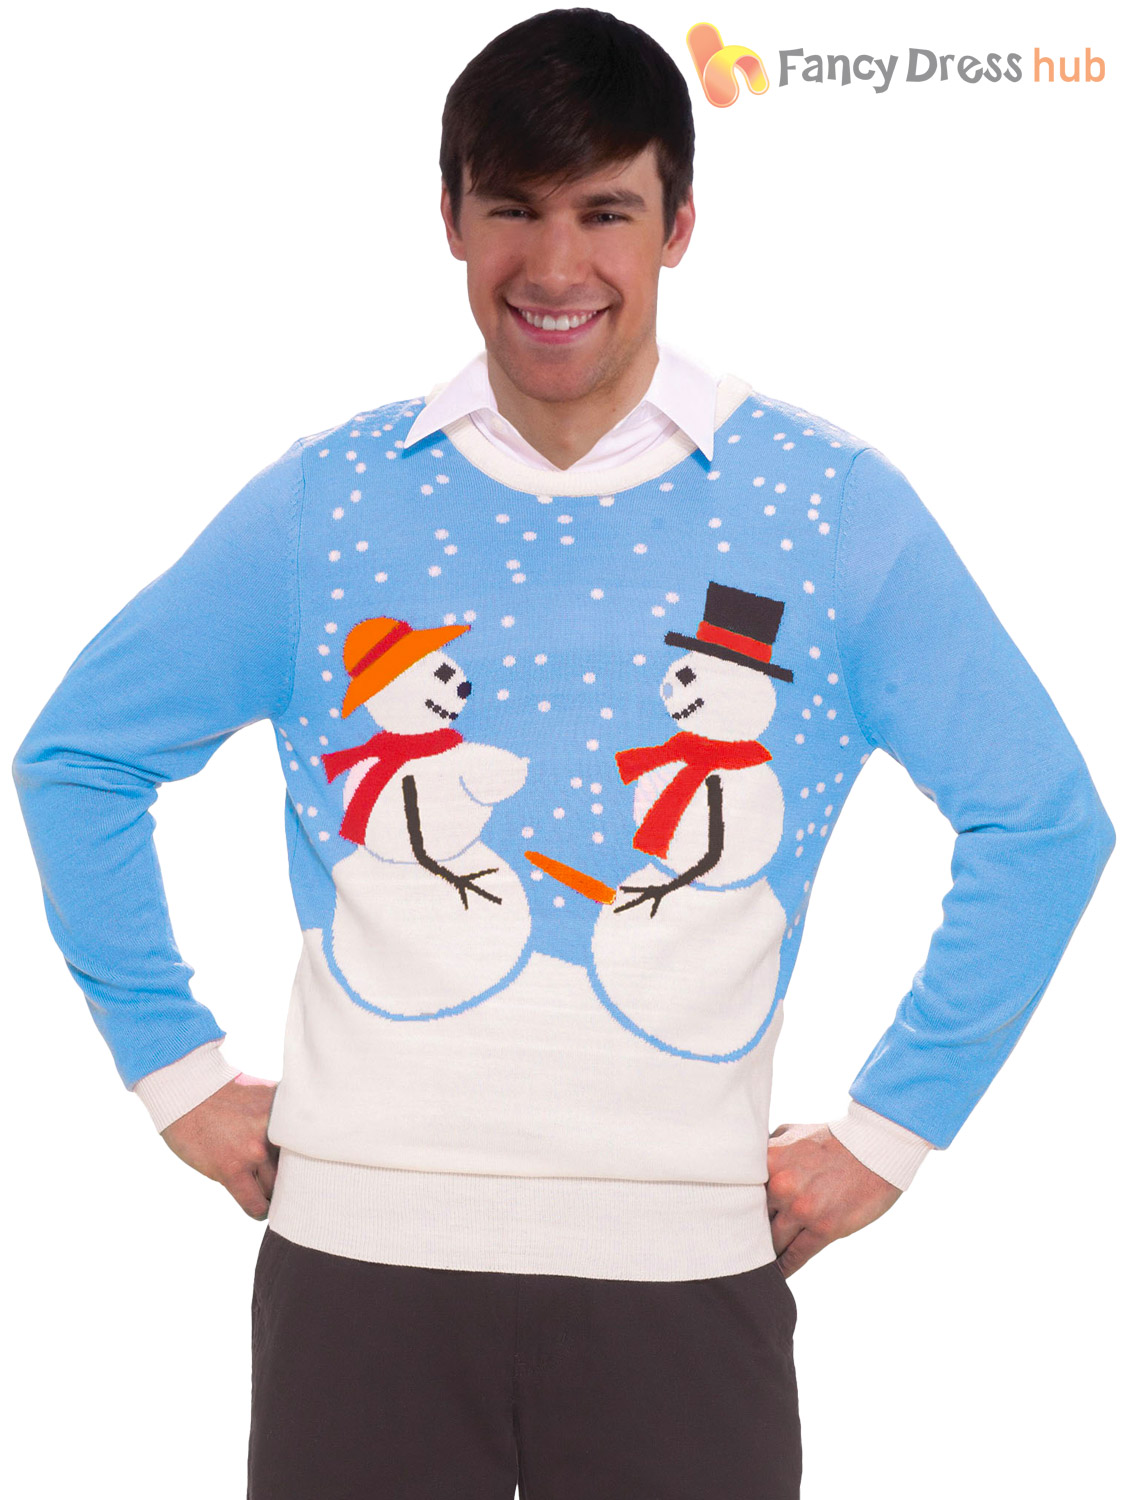 picture 2 of 2 - Ebay Ugly Christmas Sweater